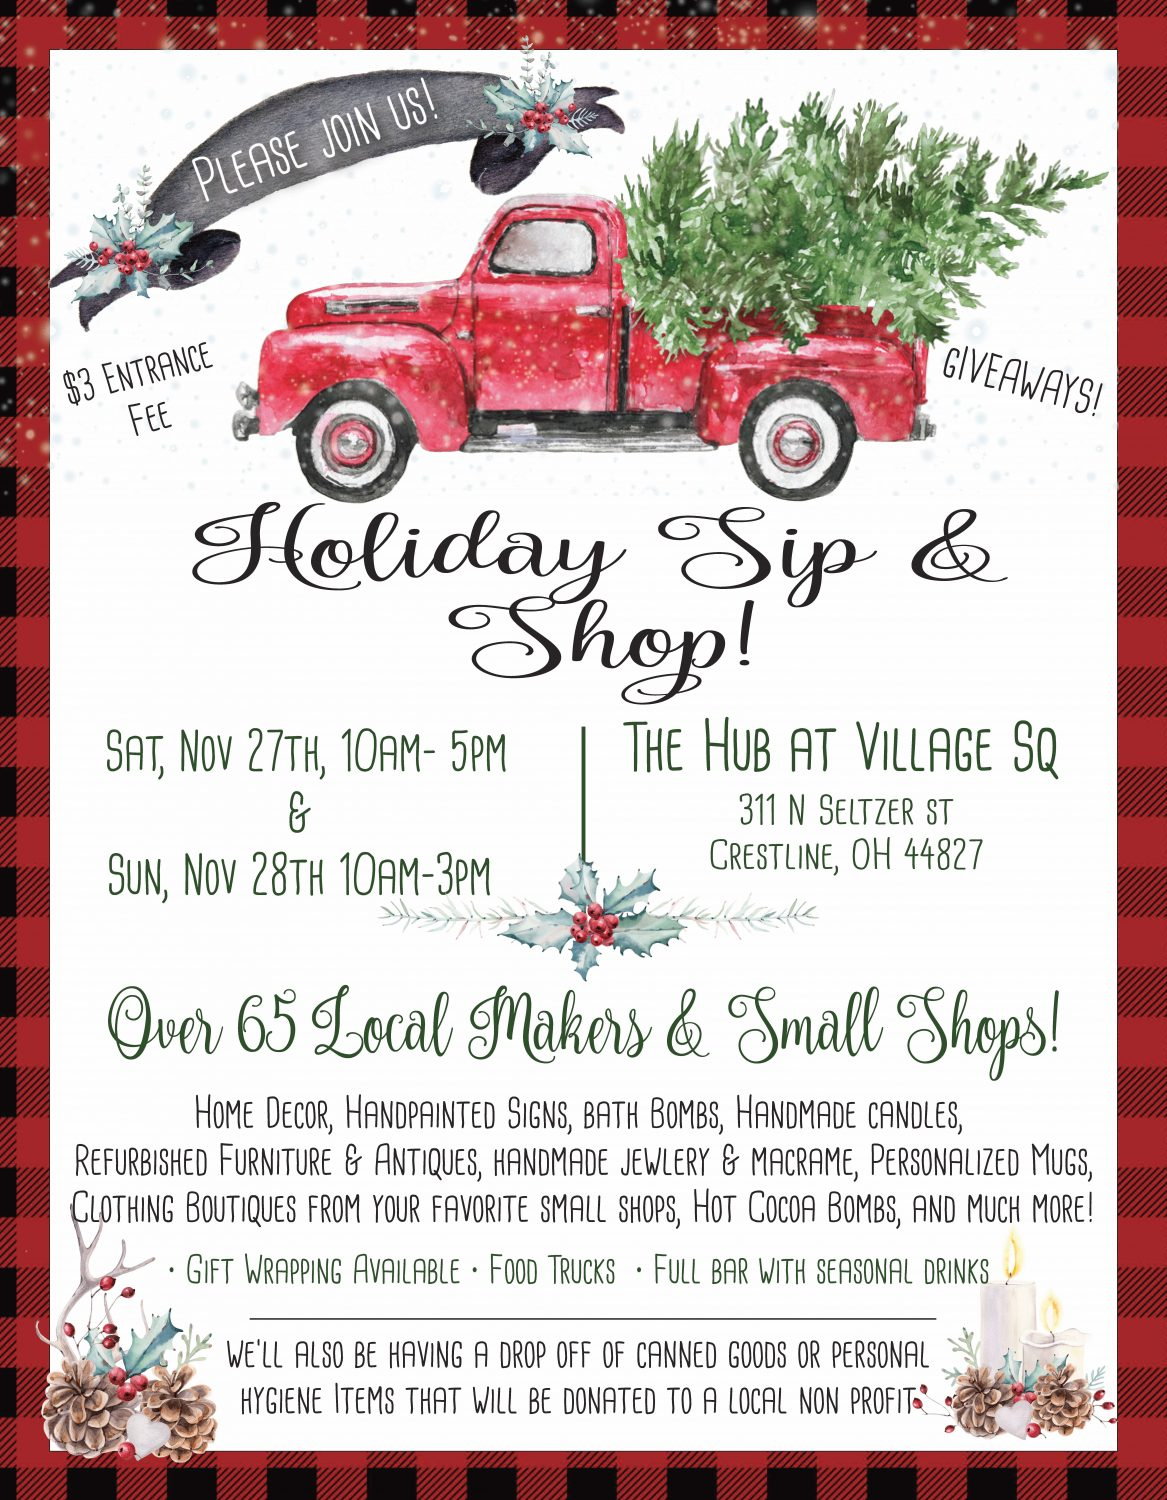 2nd Annual Holiday Sip & Shop